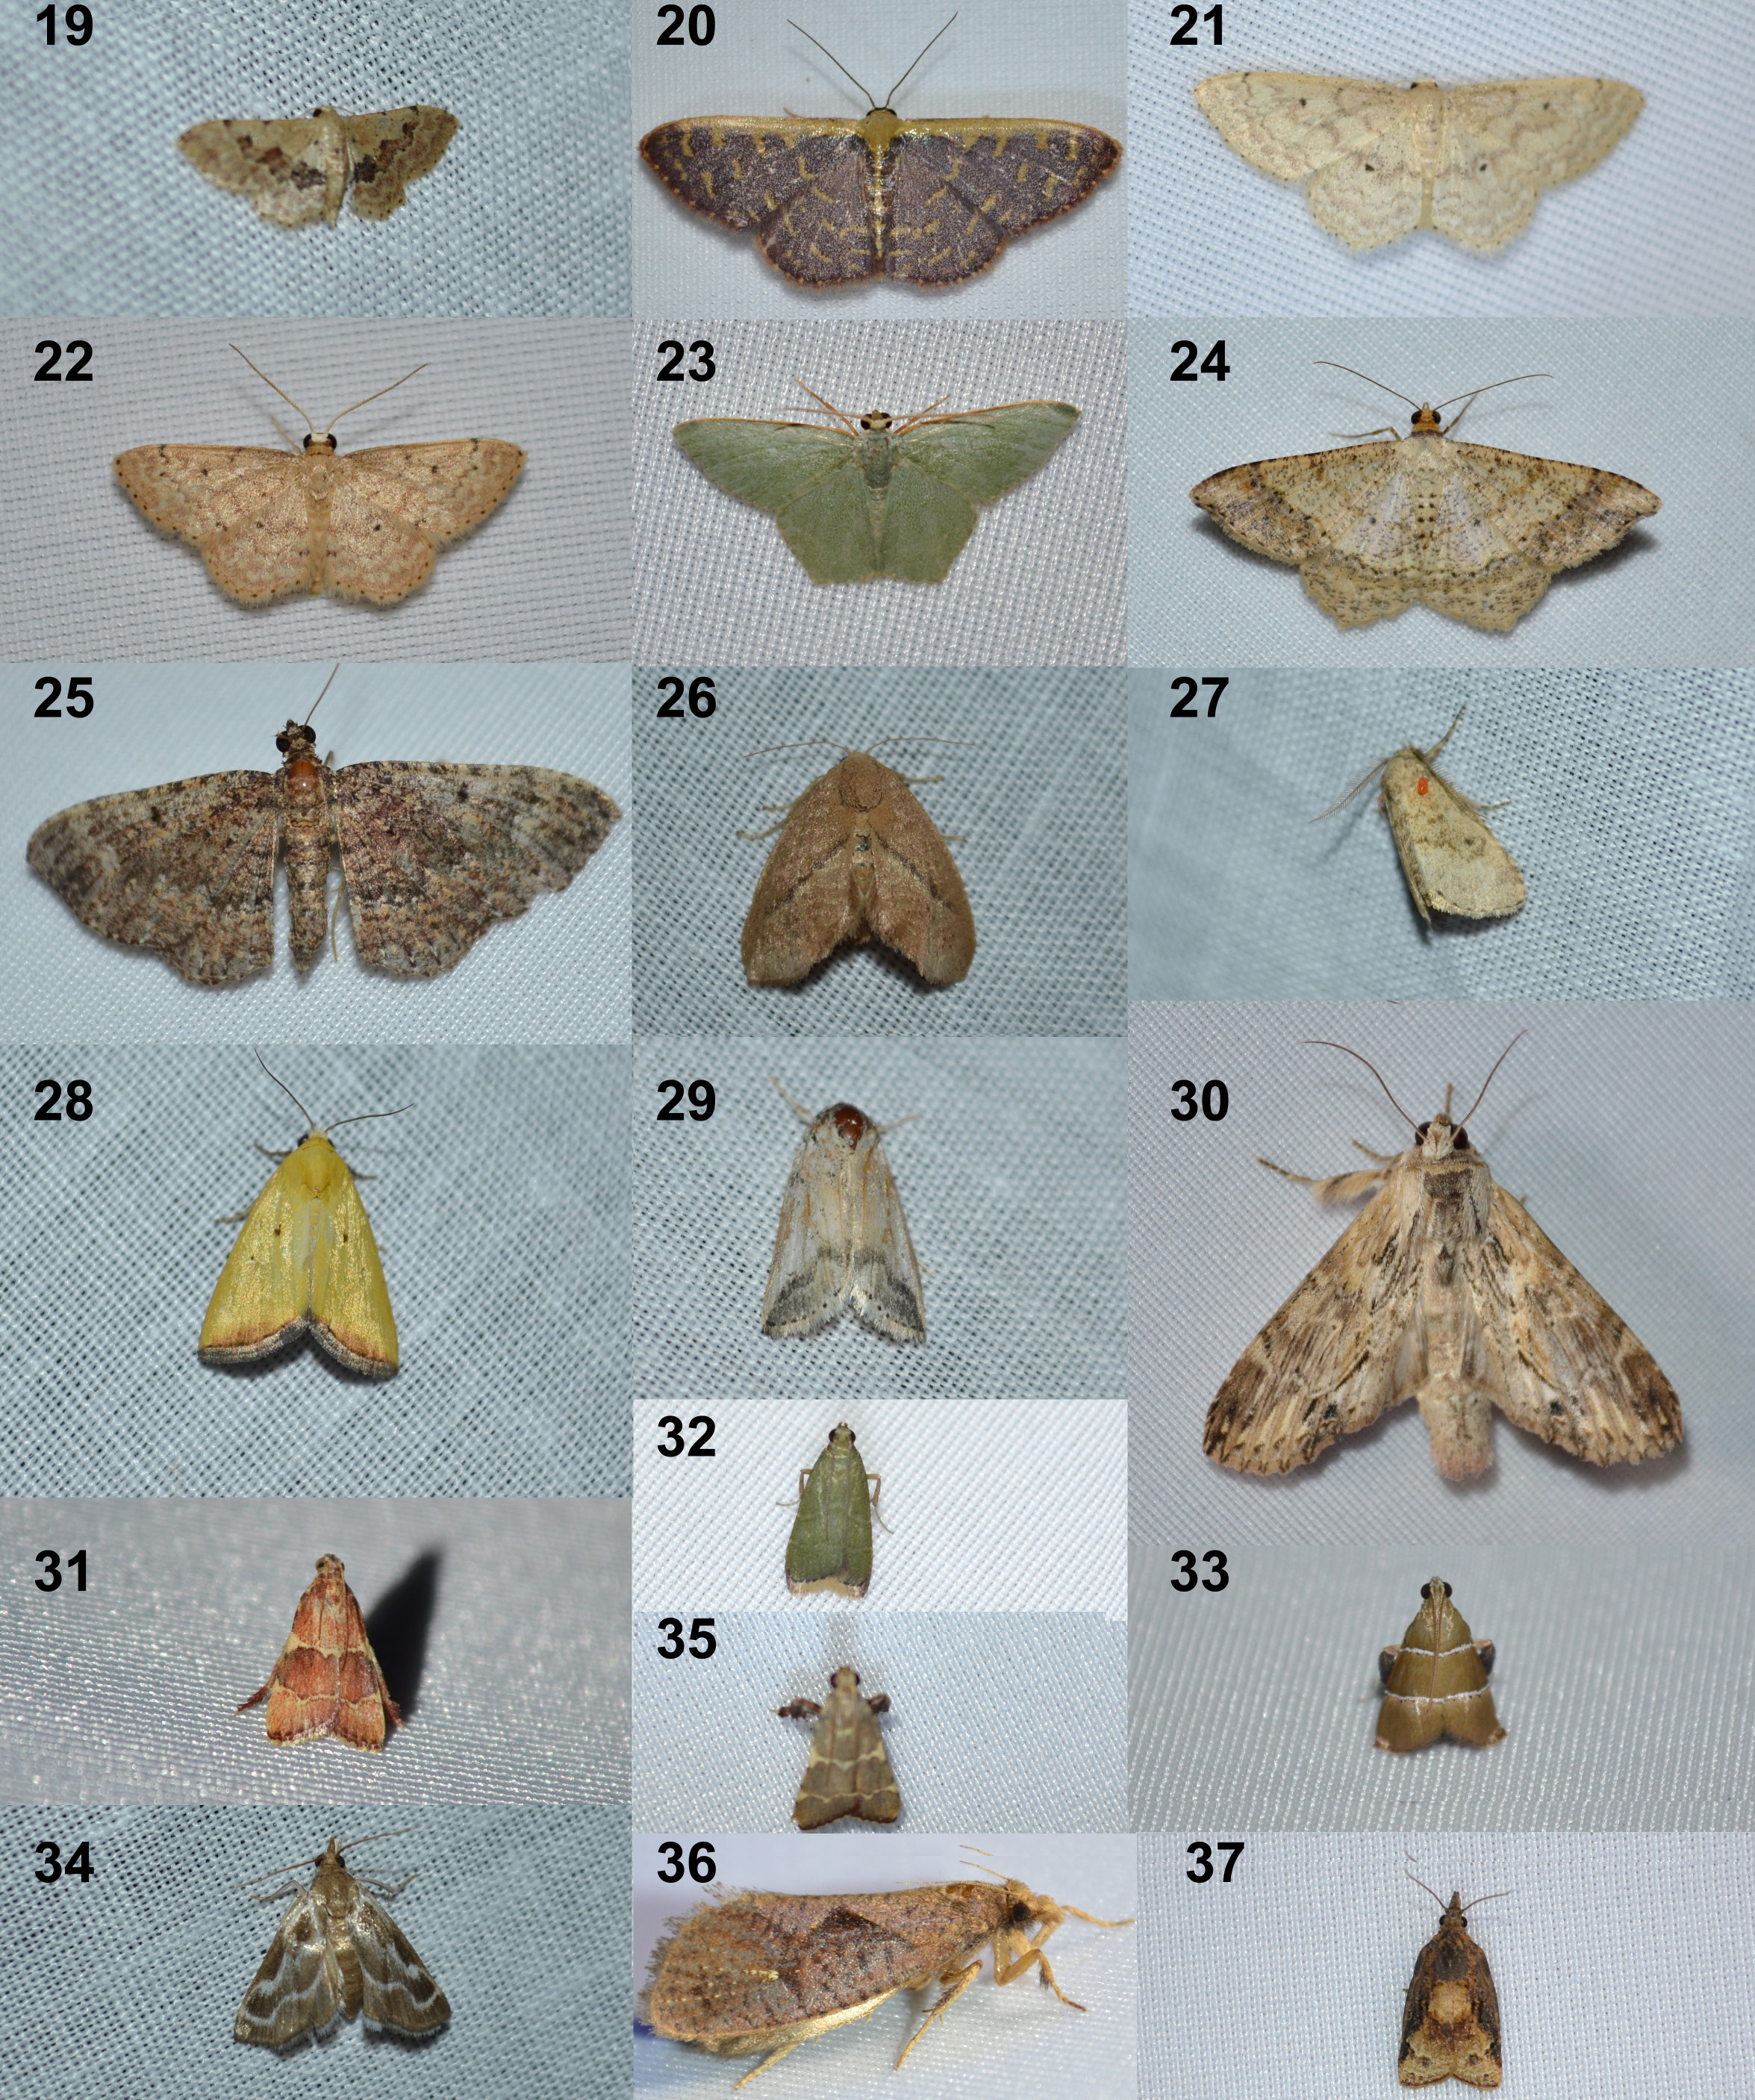 Plate 2 Moths of Huevos Part 2. See text for species names.